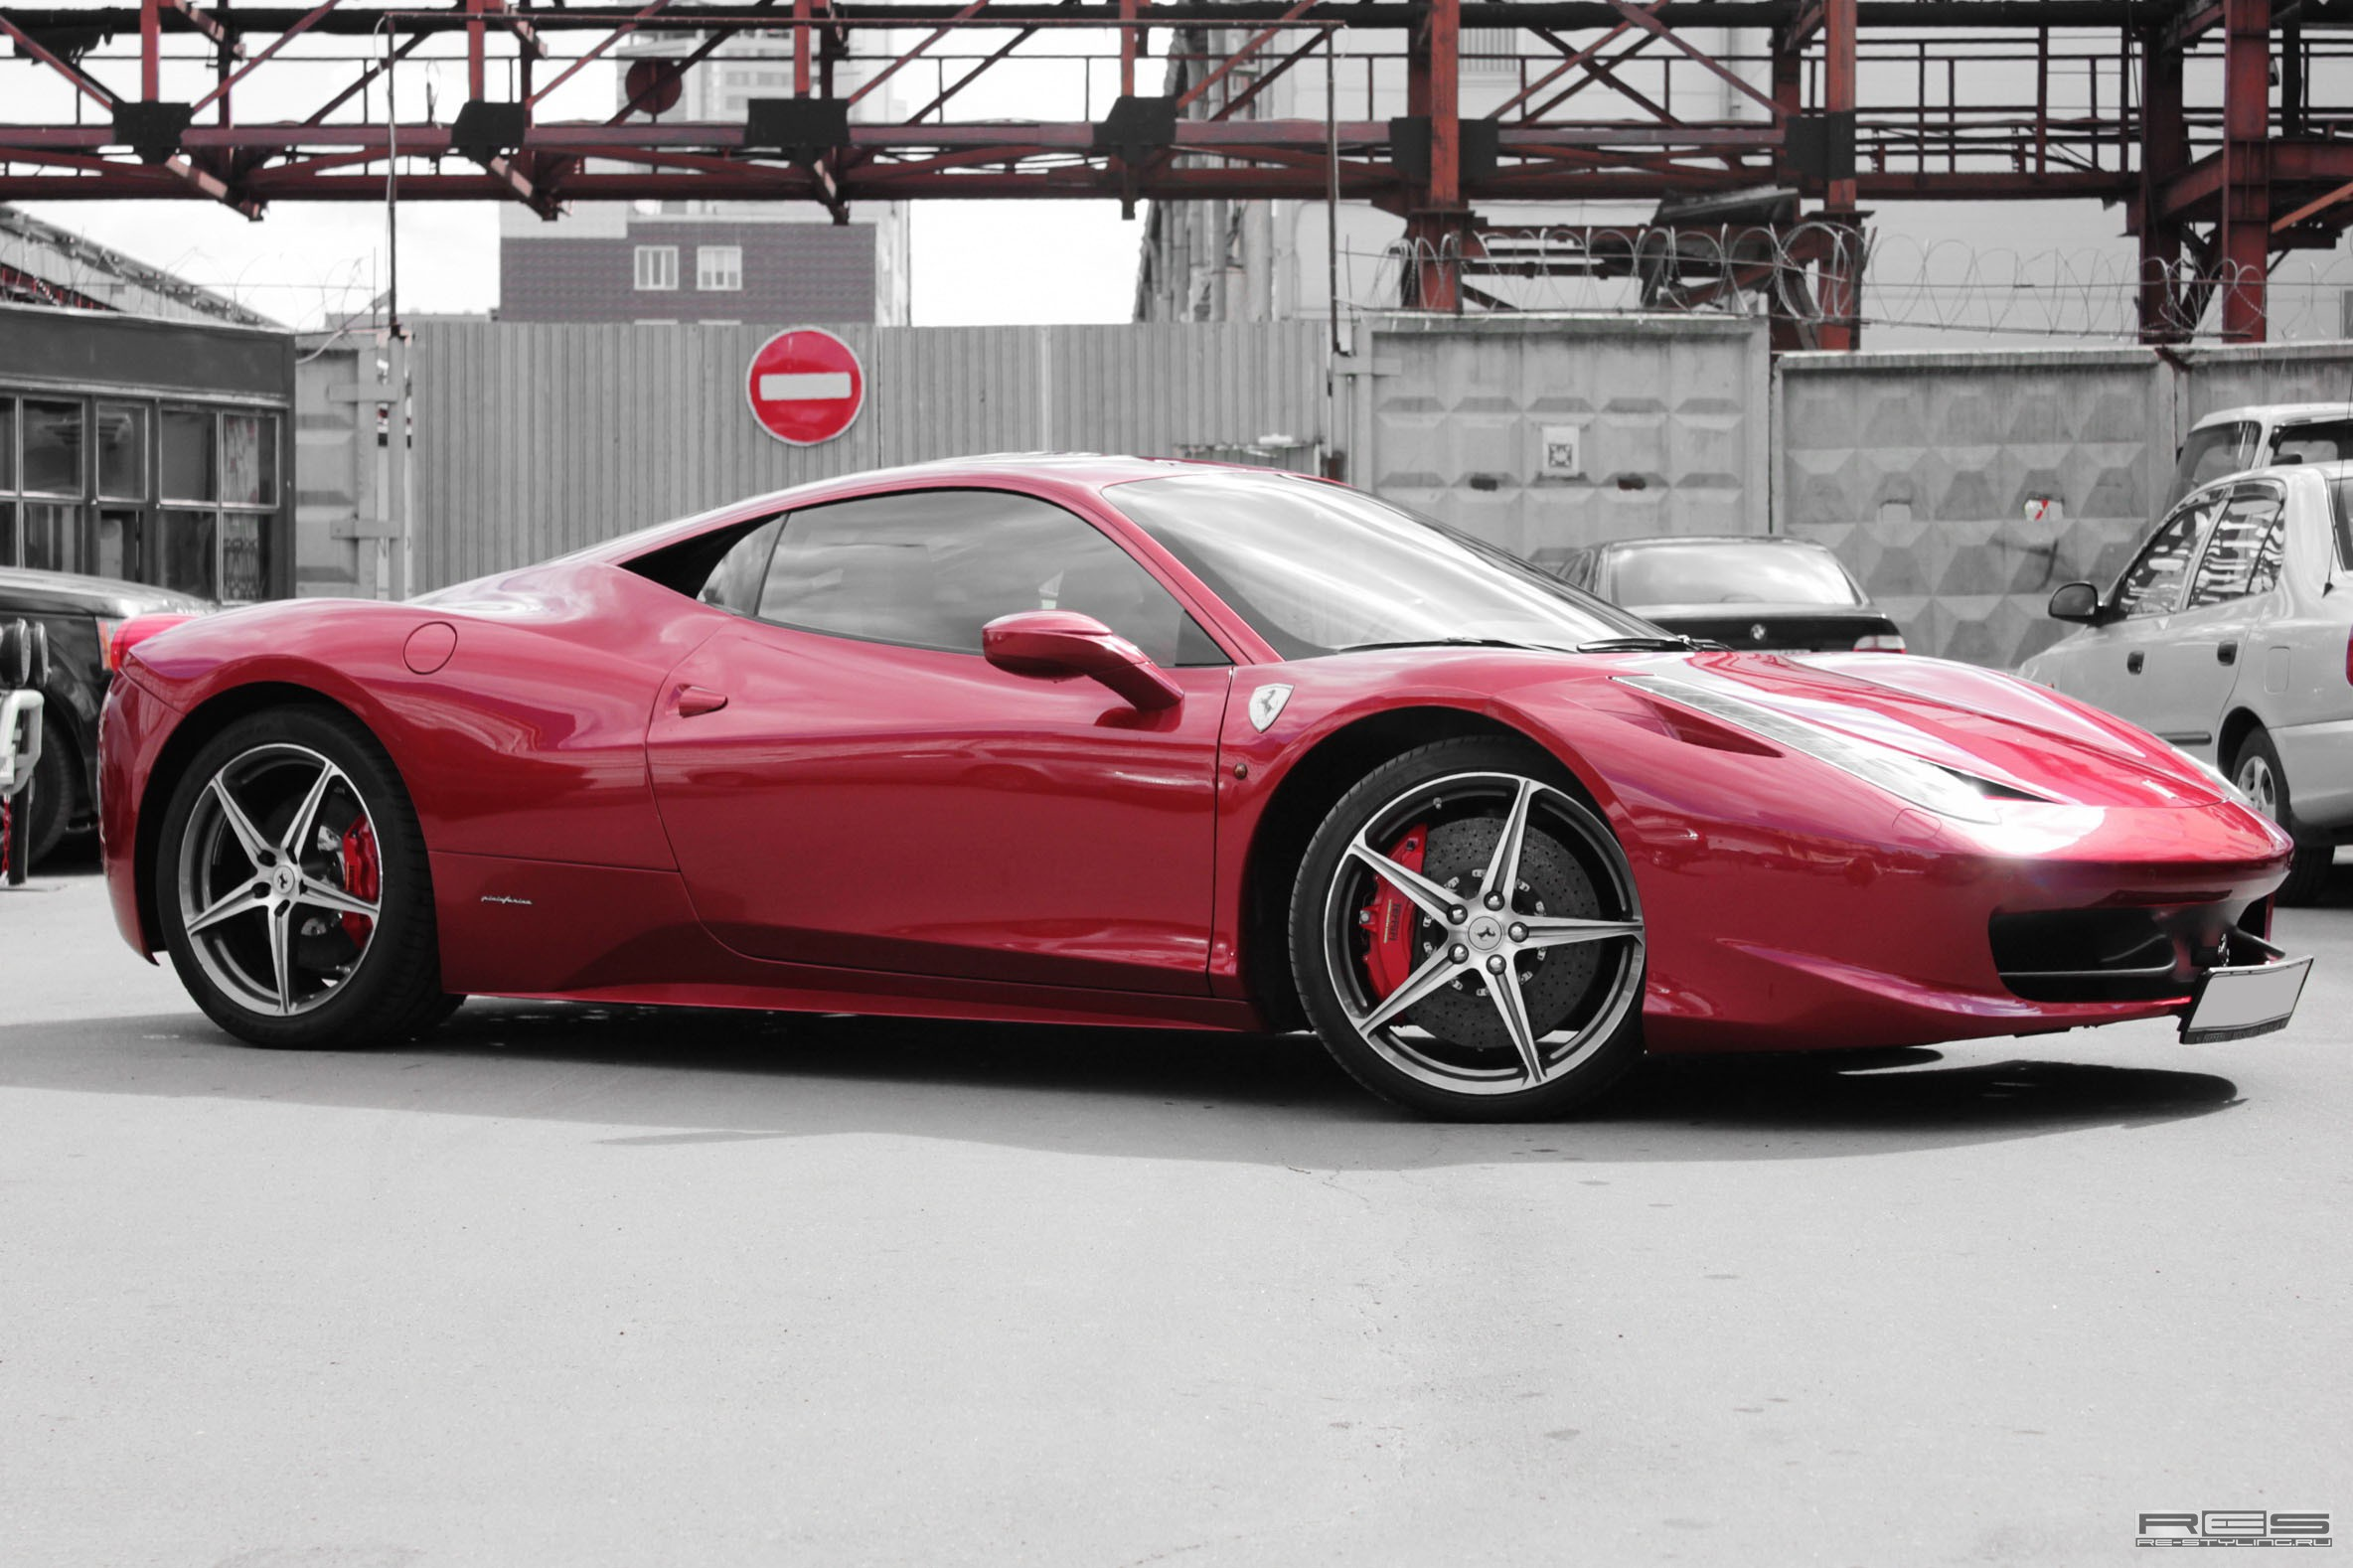 Made To Stand Out Red Chrome Ferrari 458 Italia